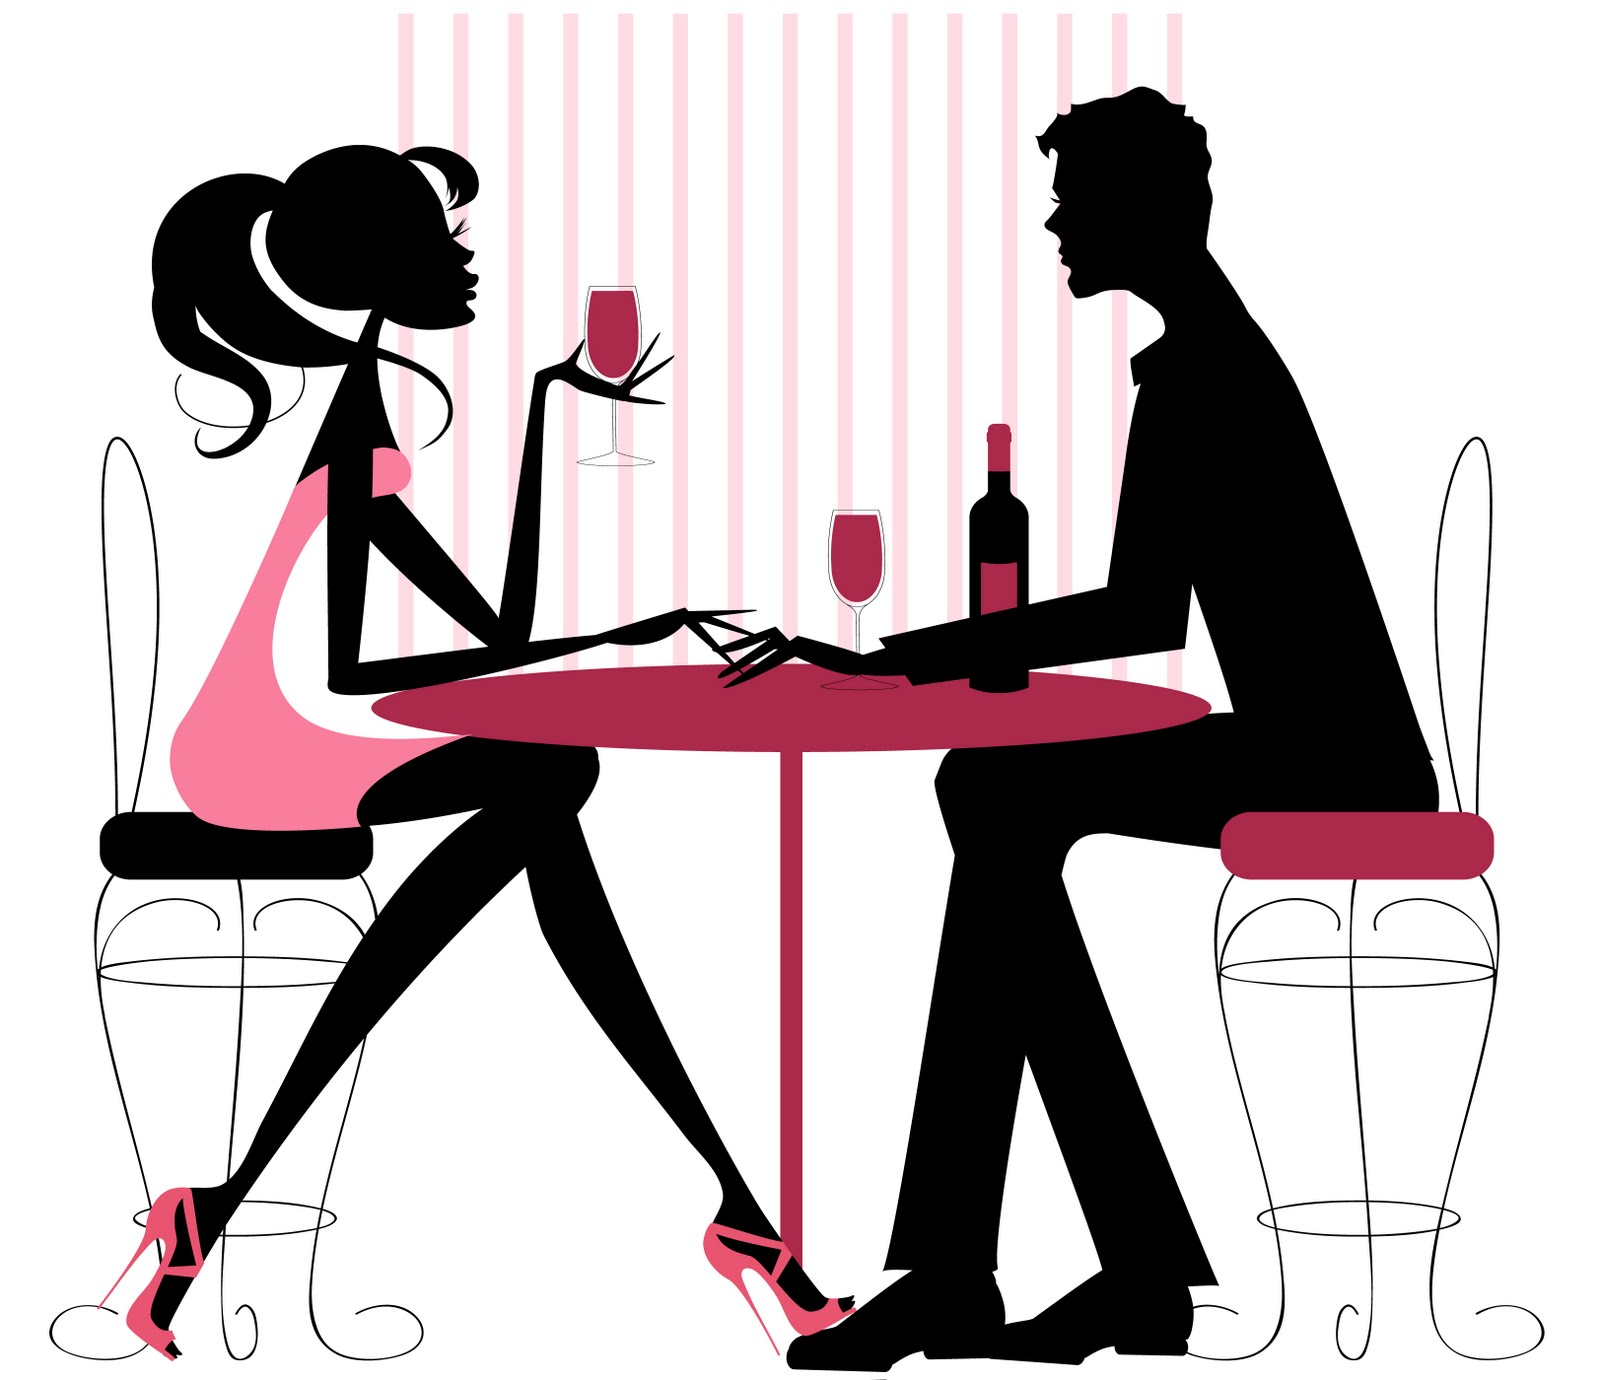 Dinner Date Png - Why Dating Articles Dominate Your News Feed – The Two Cities